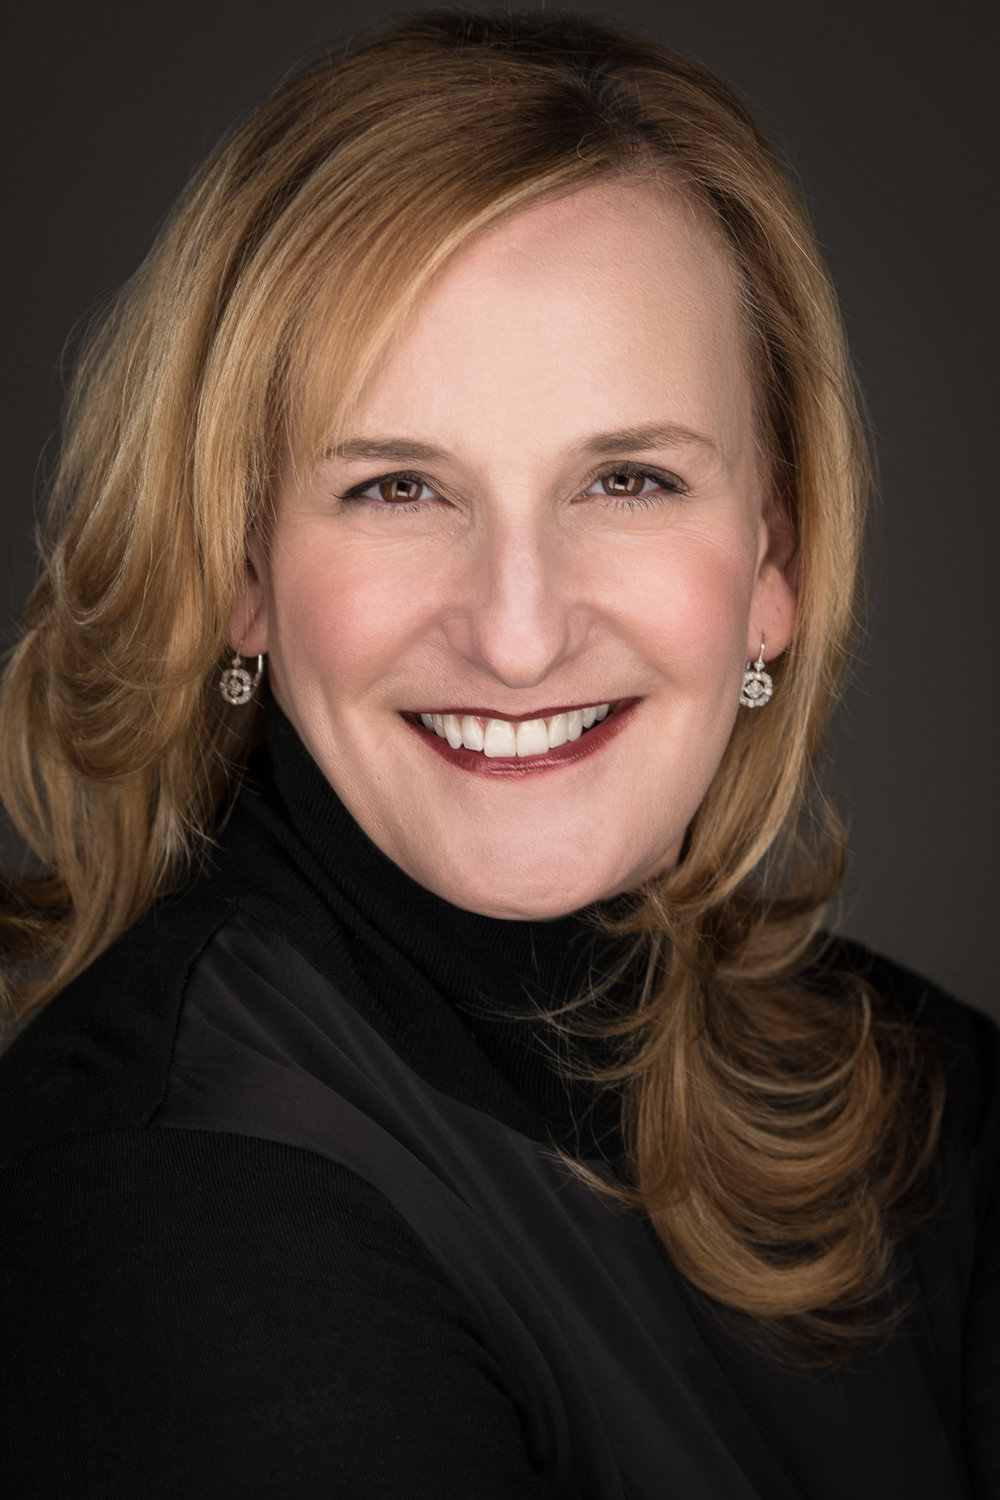 Pamela Brown Forman - Pamela Brown Forman has a passion for project efficiency combined with a meticulous eye for detail.After graduating with honors from Syracuse University Newhouse School of Communications, Pam entered corporate advertising, working at worldwide agencies including Arnold, Hill Holiday and Digitas. She was trained to offer her clients full service, personalized, & customized project management. After decades working in advertising, design and corporate brand strategy, Pam began to focus on her true passion for home renovations. She founded her firm, PBF Home Renovation & Design, LLC, which serves clients throughout New England.Pam is a proven, highly experienced manager who has been recognized for her straight forward approach, collaborative work style, and ability to multi task seamlessly. Pam has also held many senior level volunteer roles and board positions, leading several Boston-based nonprofit organizations. Pam has the experience to bring your vision to life, while ensuring the highest level of efficiency and individualized service.